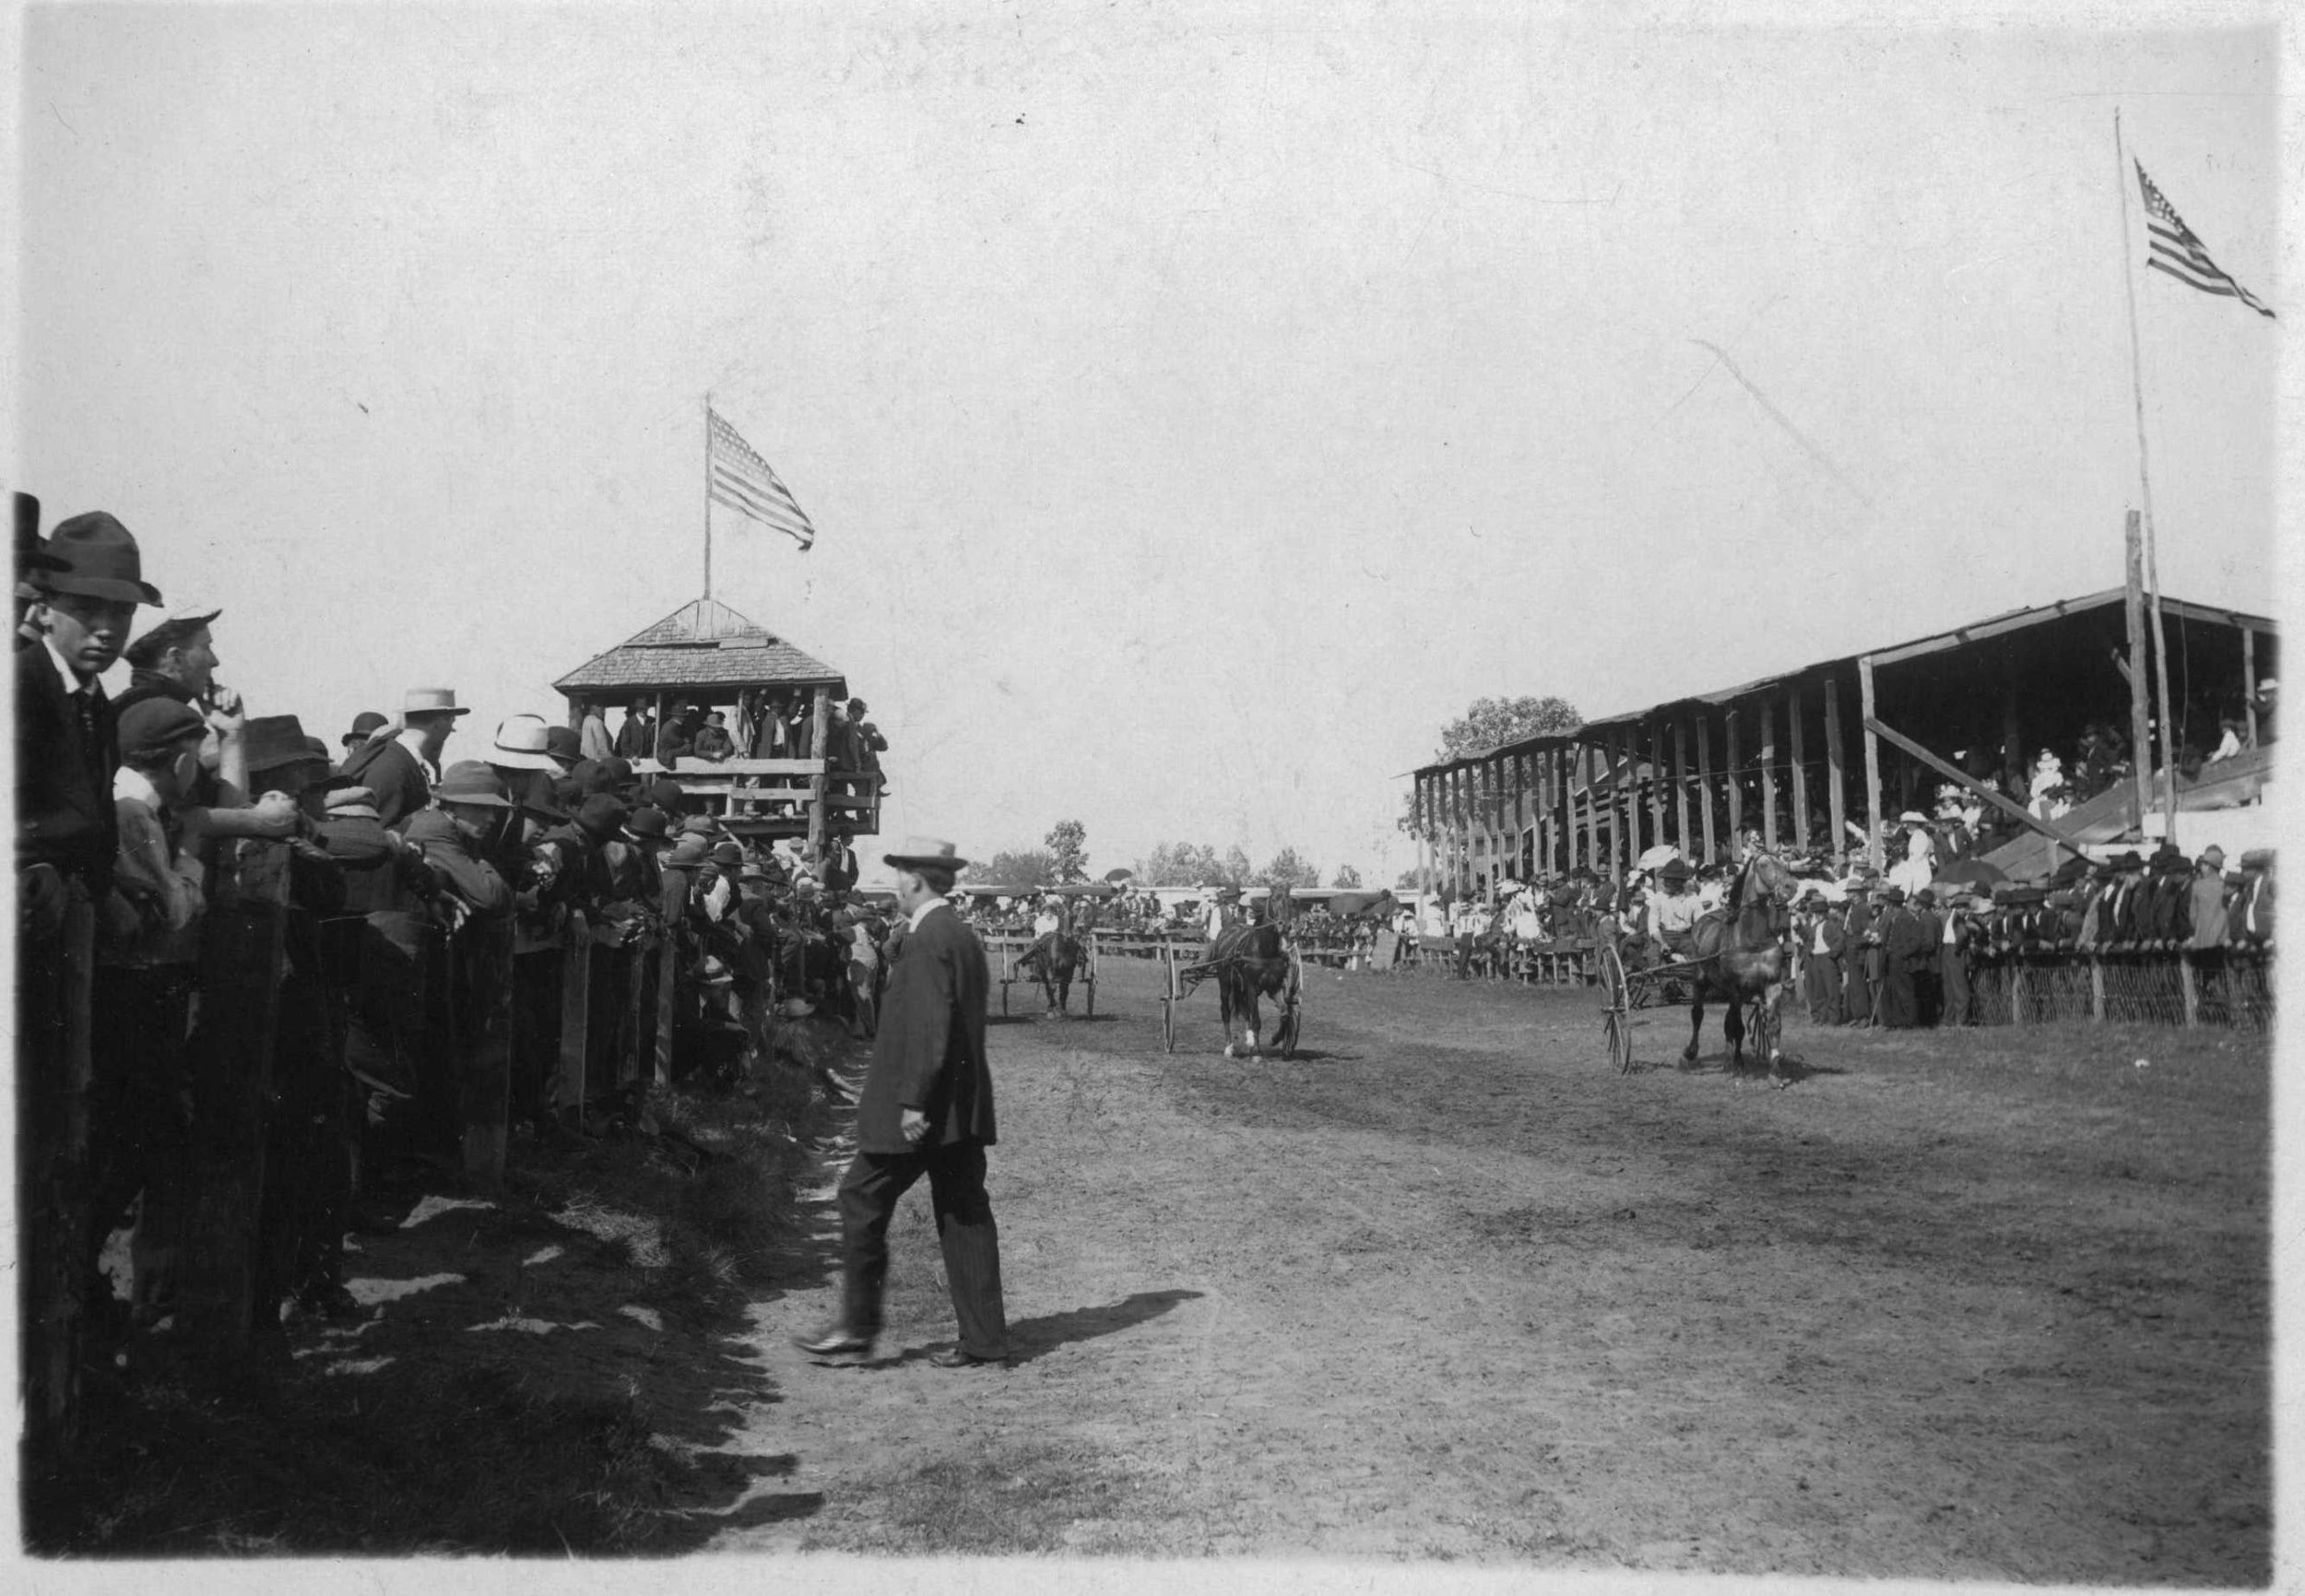 Races-at-Fair-1911.jpg